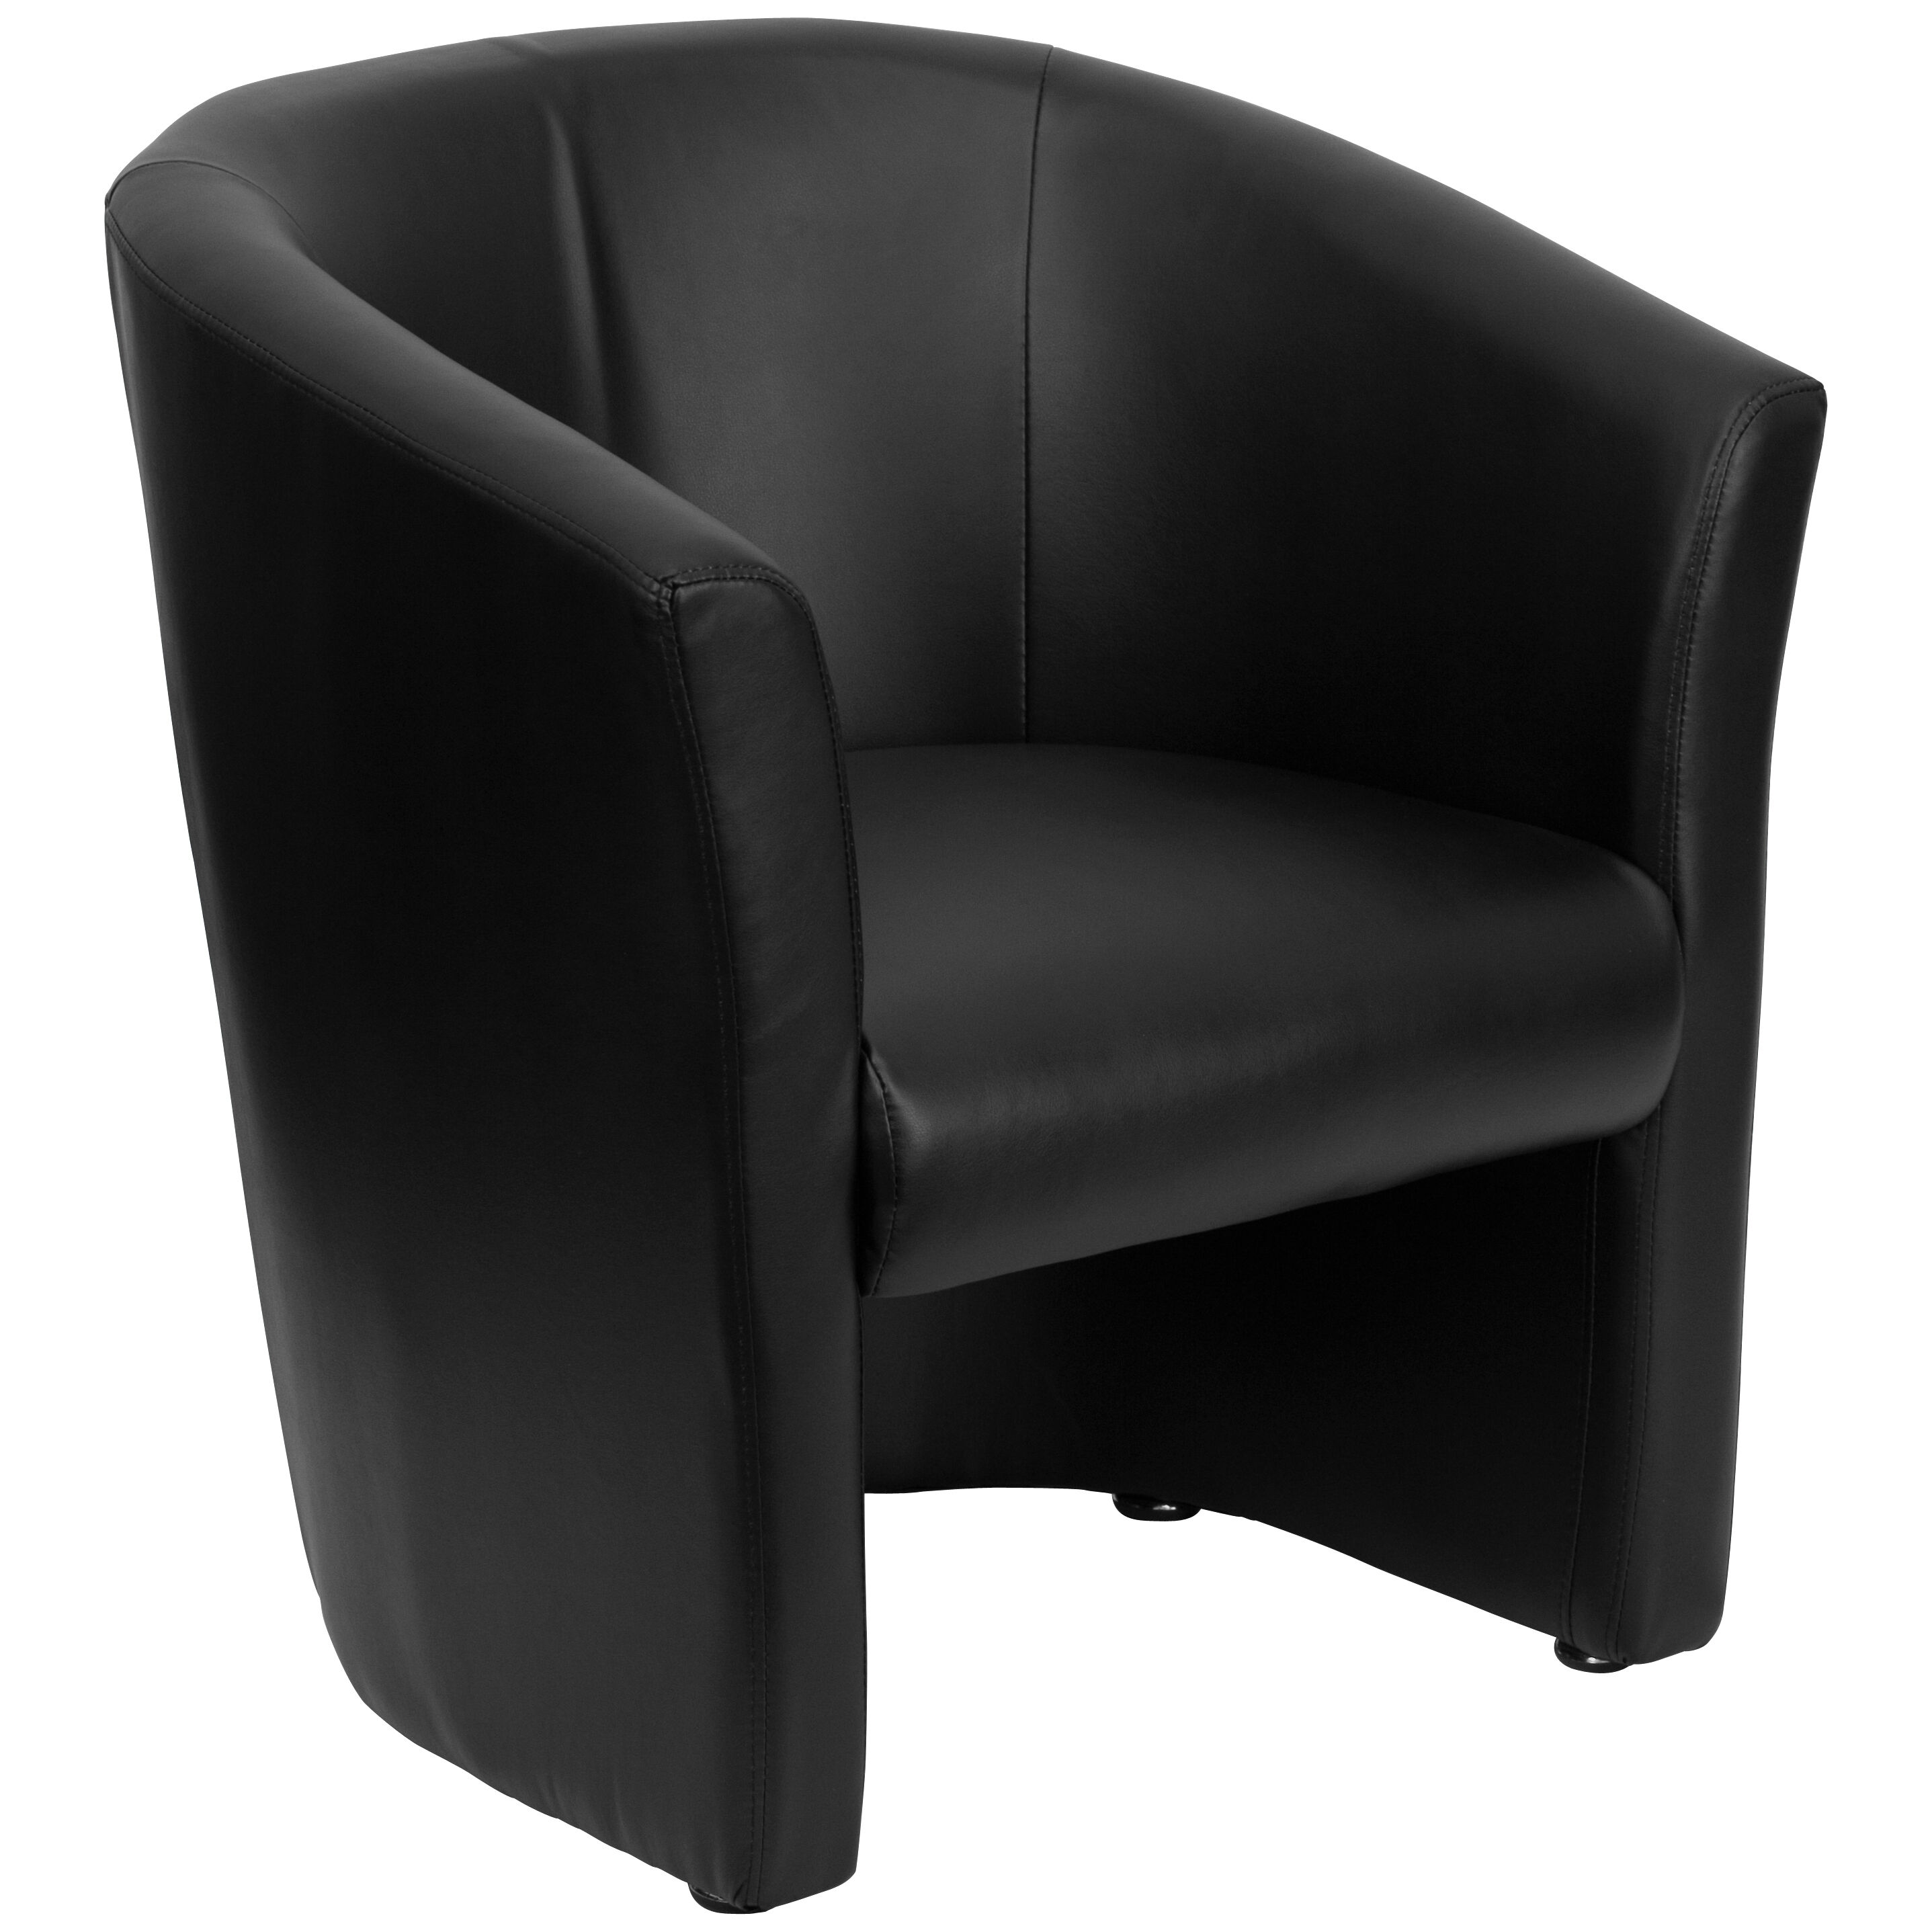 Our Black Leather BarrelShaped Guest Chair is on sale now